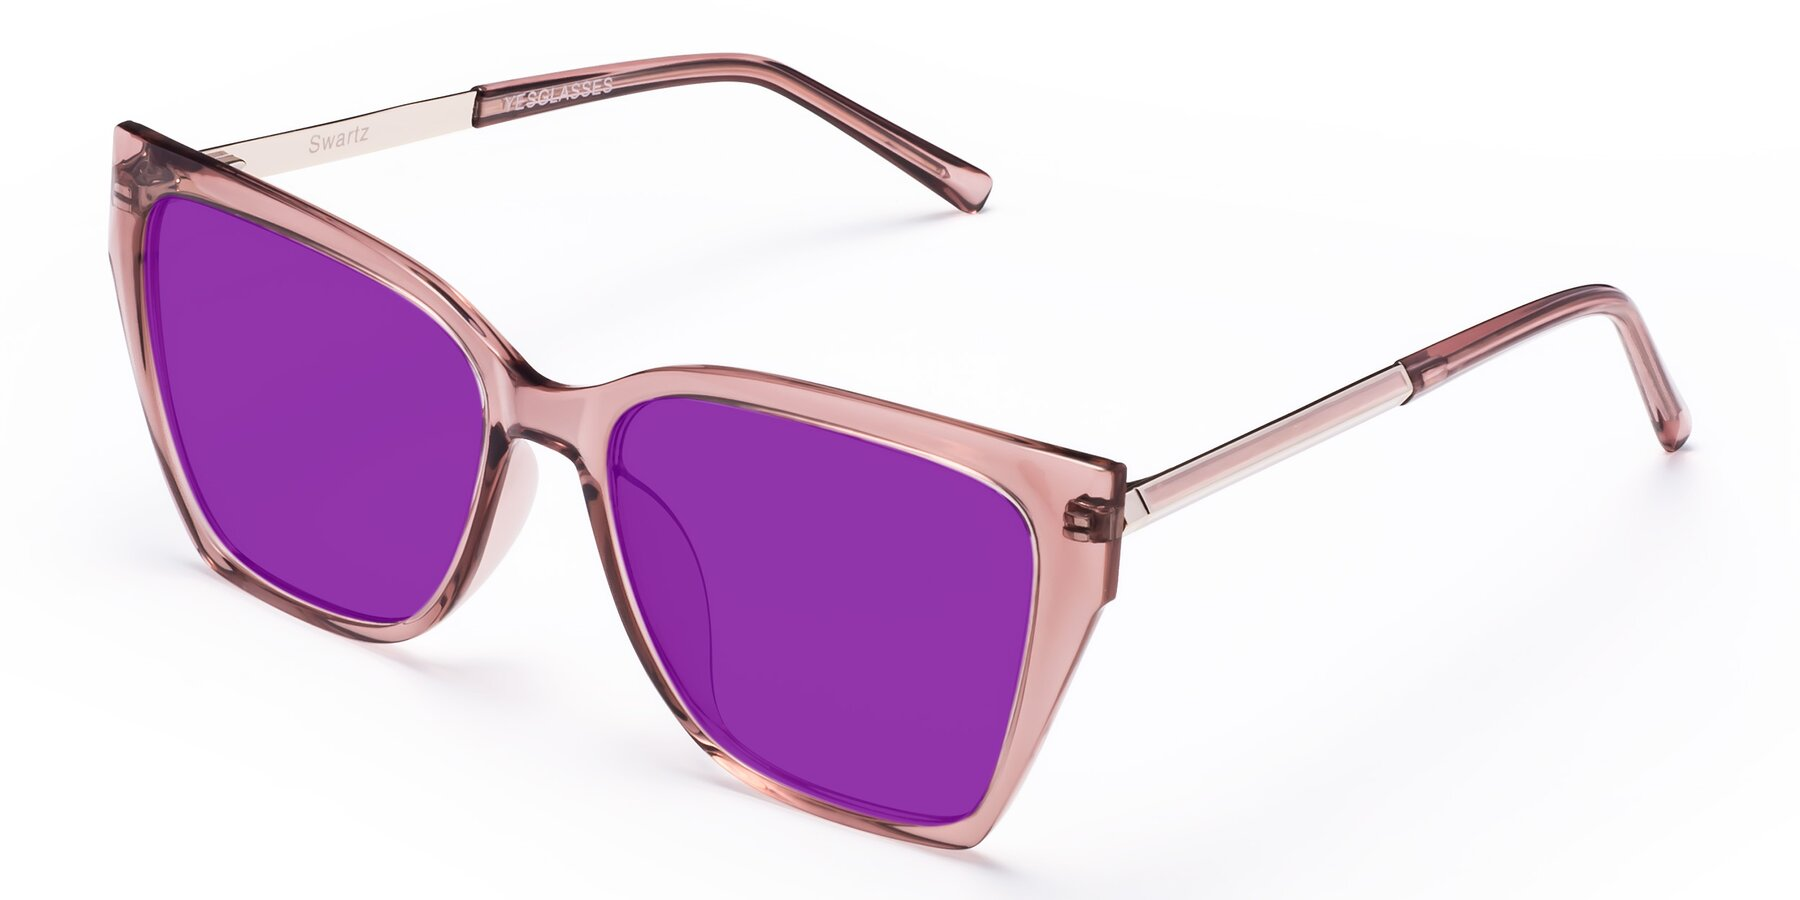 Angle of Swartz in Grape with Purple Tinted Lenses